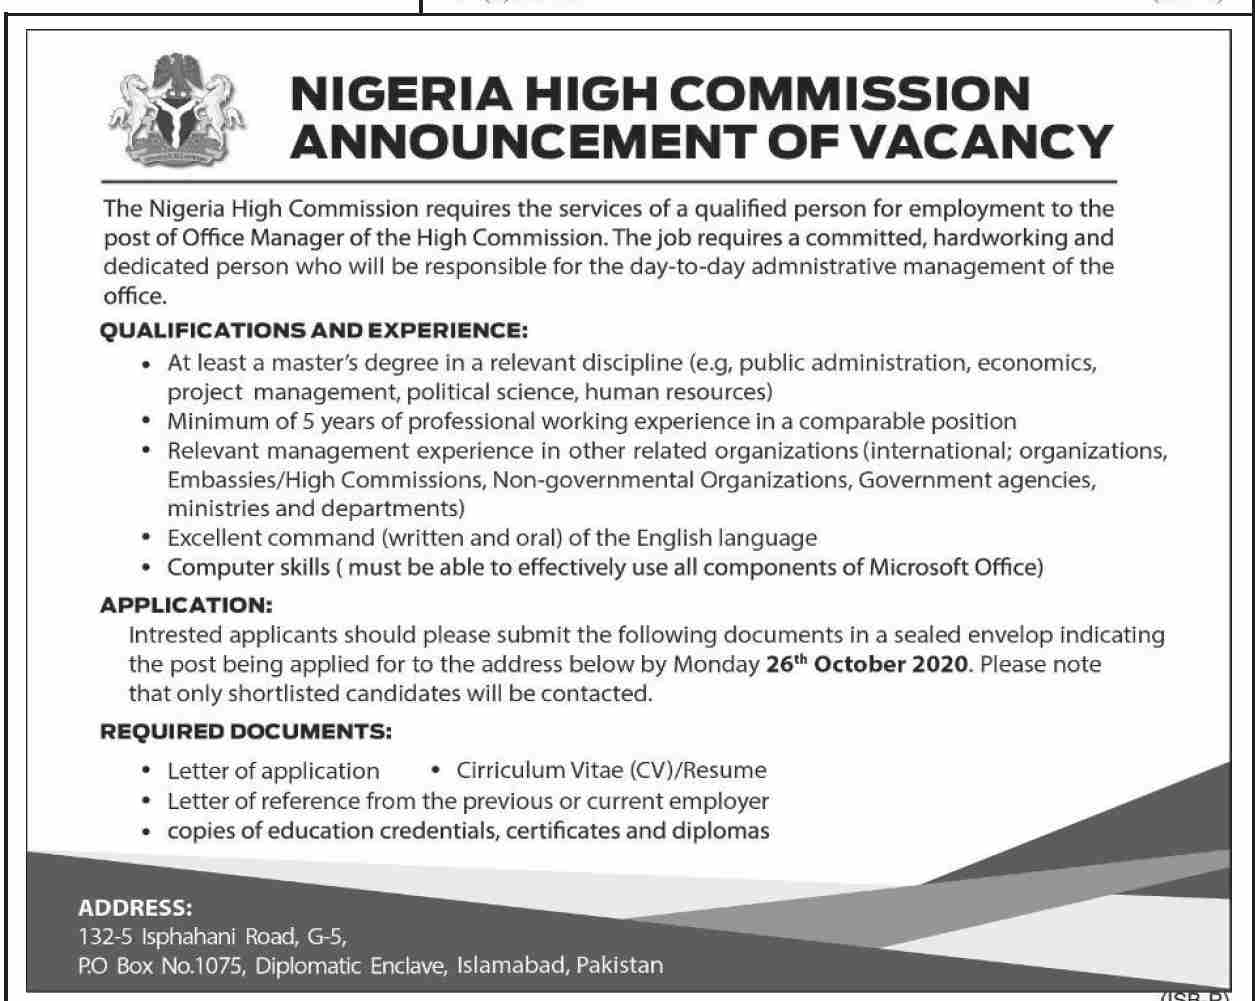 The Nigeria High Commission Jobs October 2020